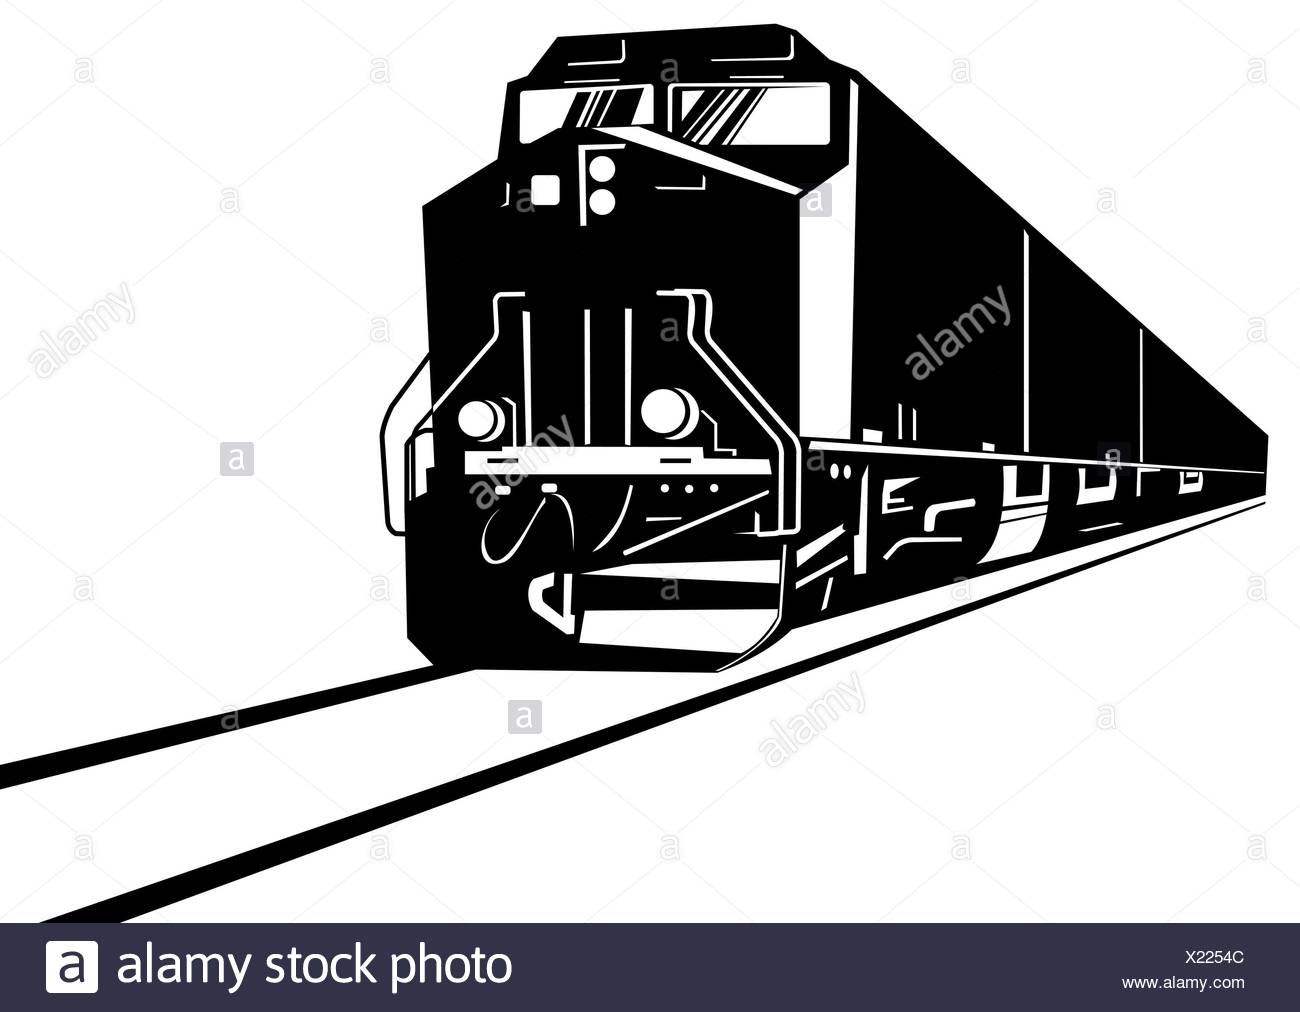 diesel train locomotive retro - Stock Image